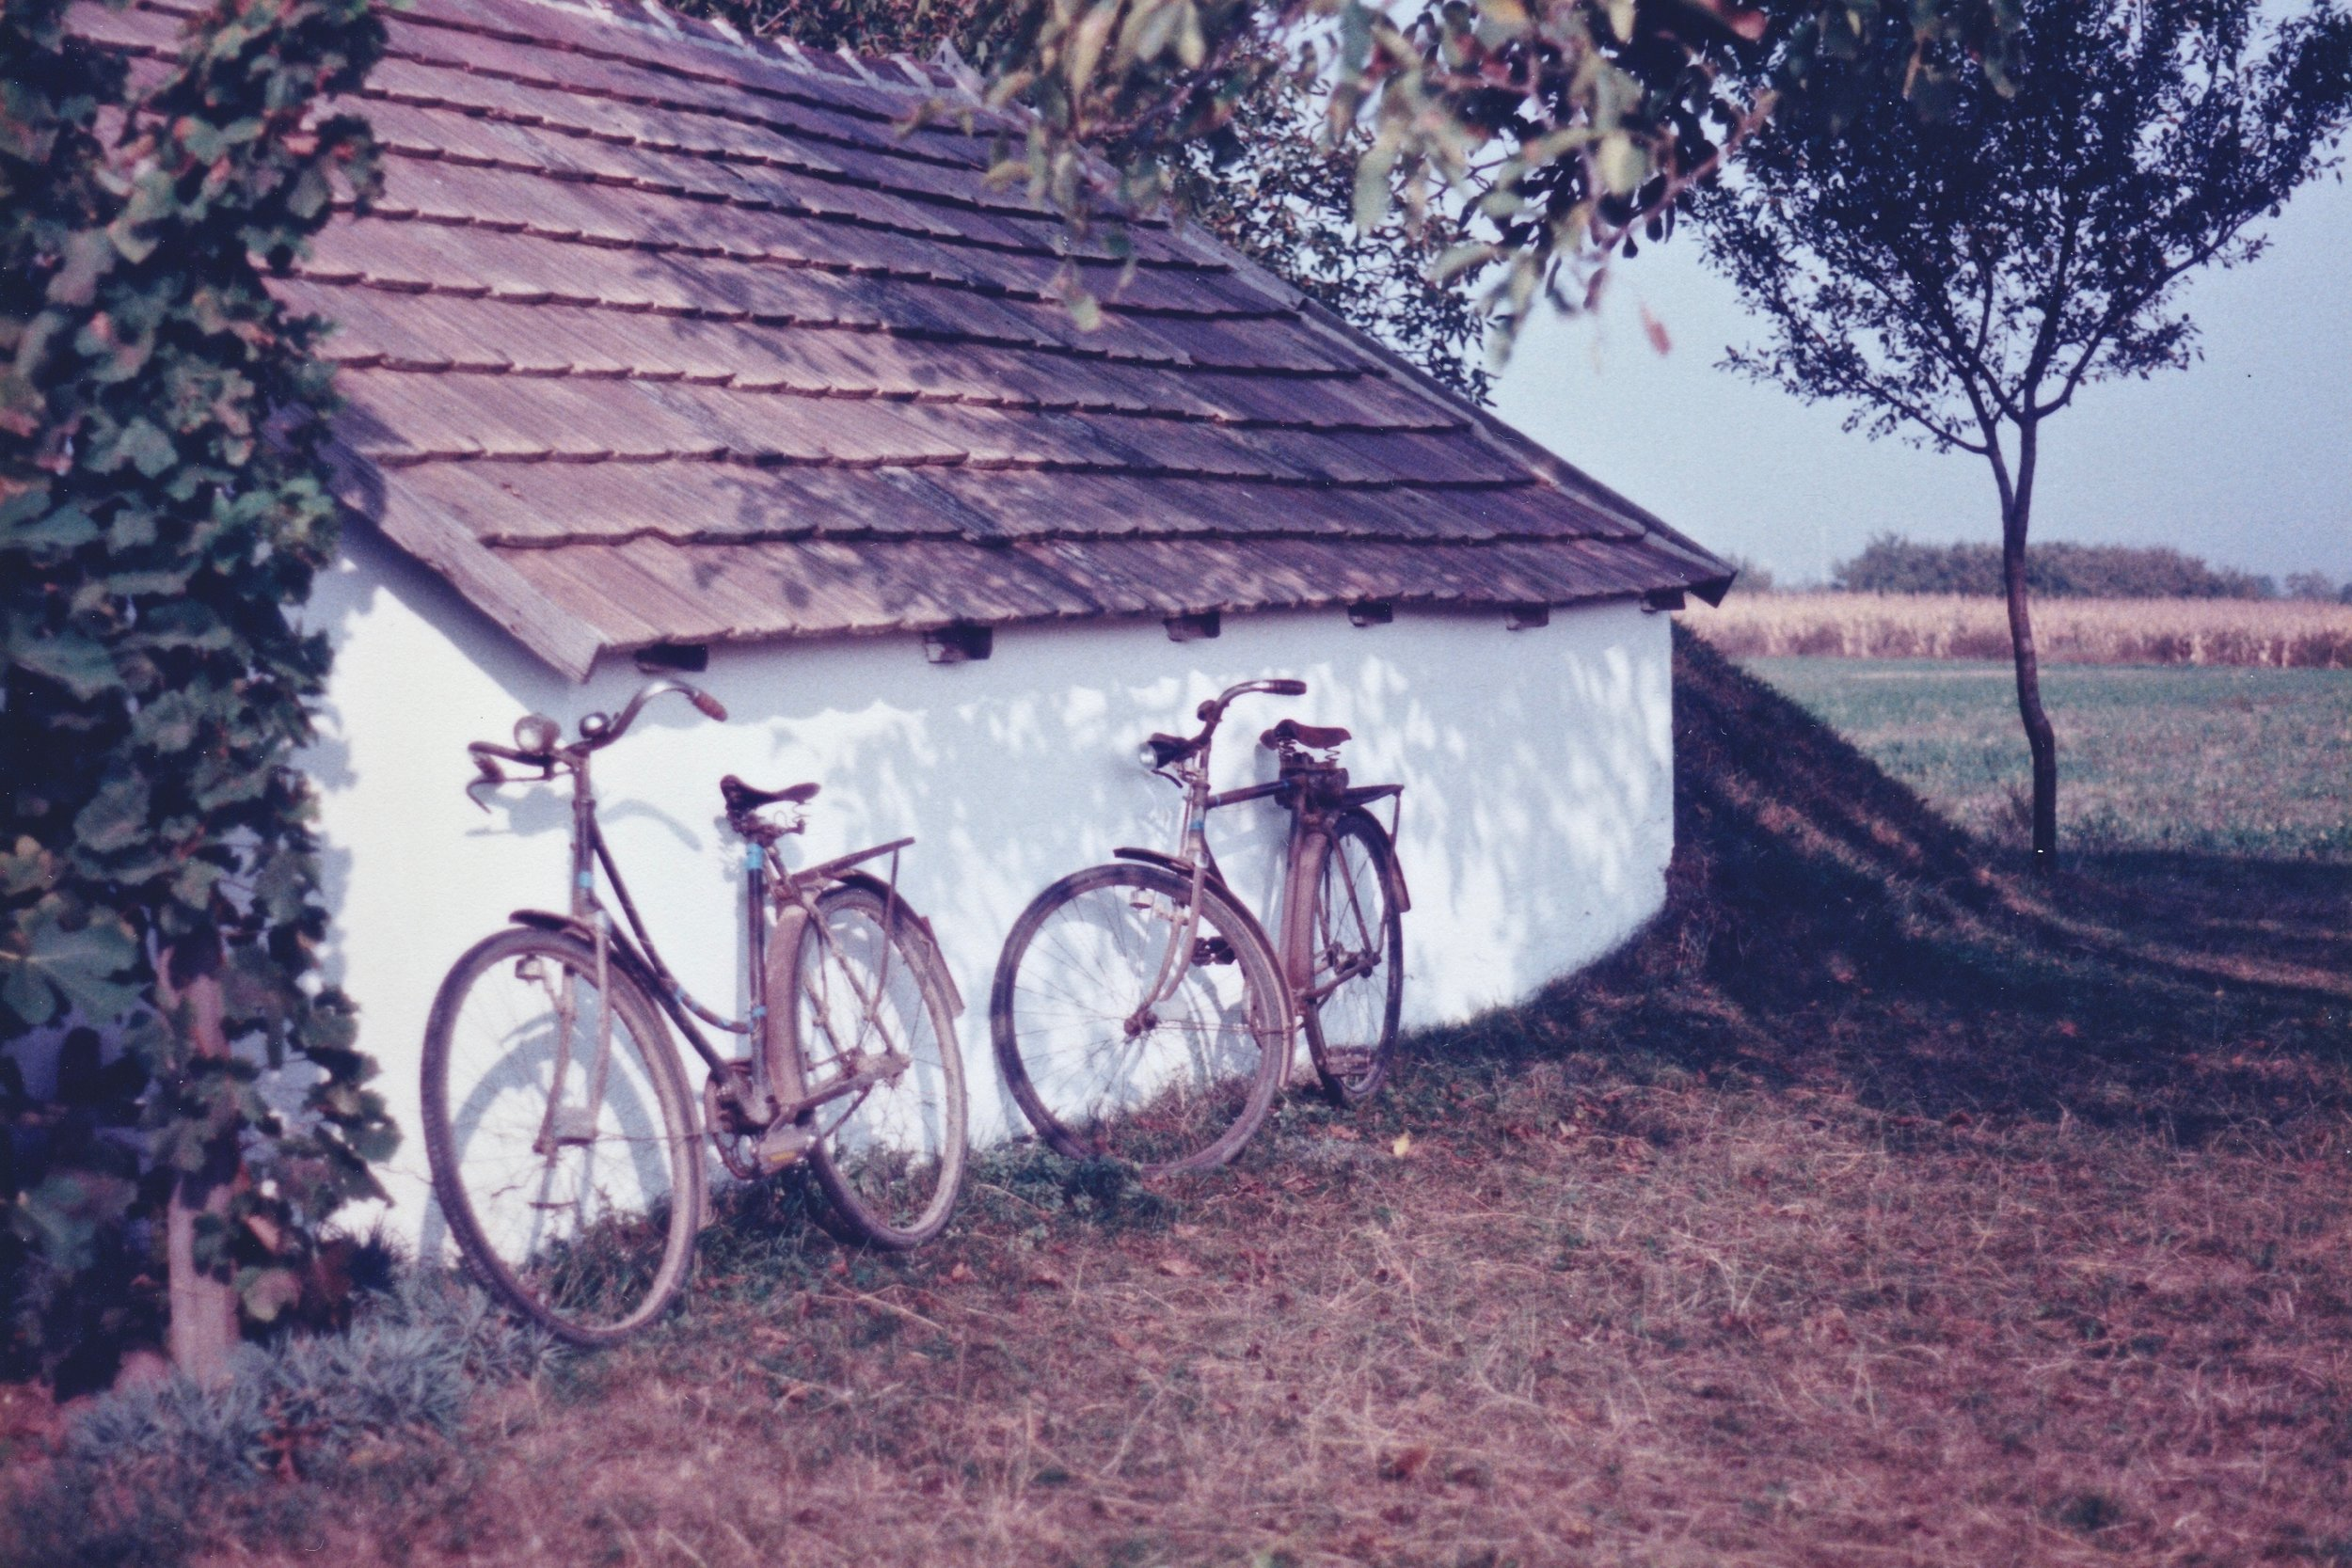 Grandparent's bicycles in the vineyard